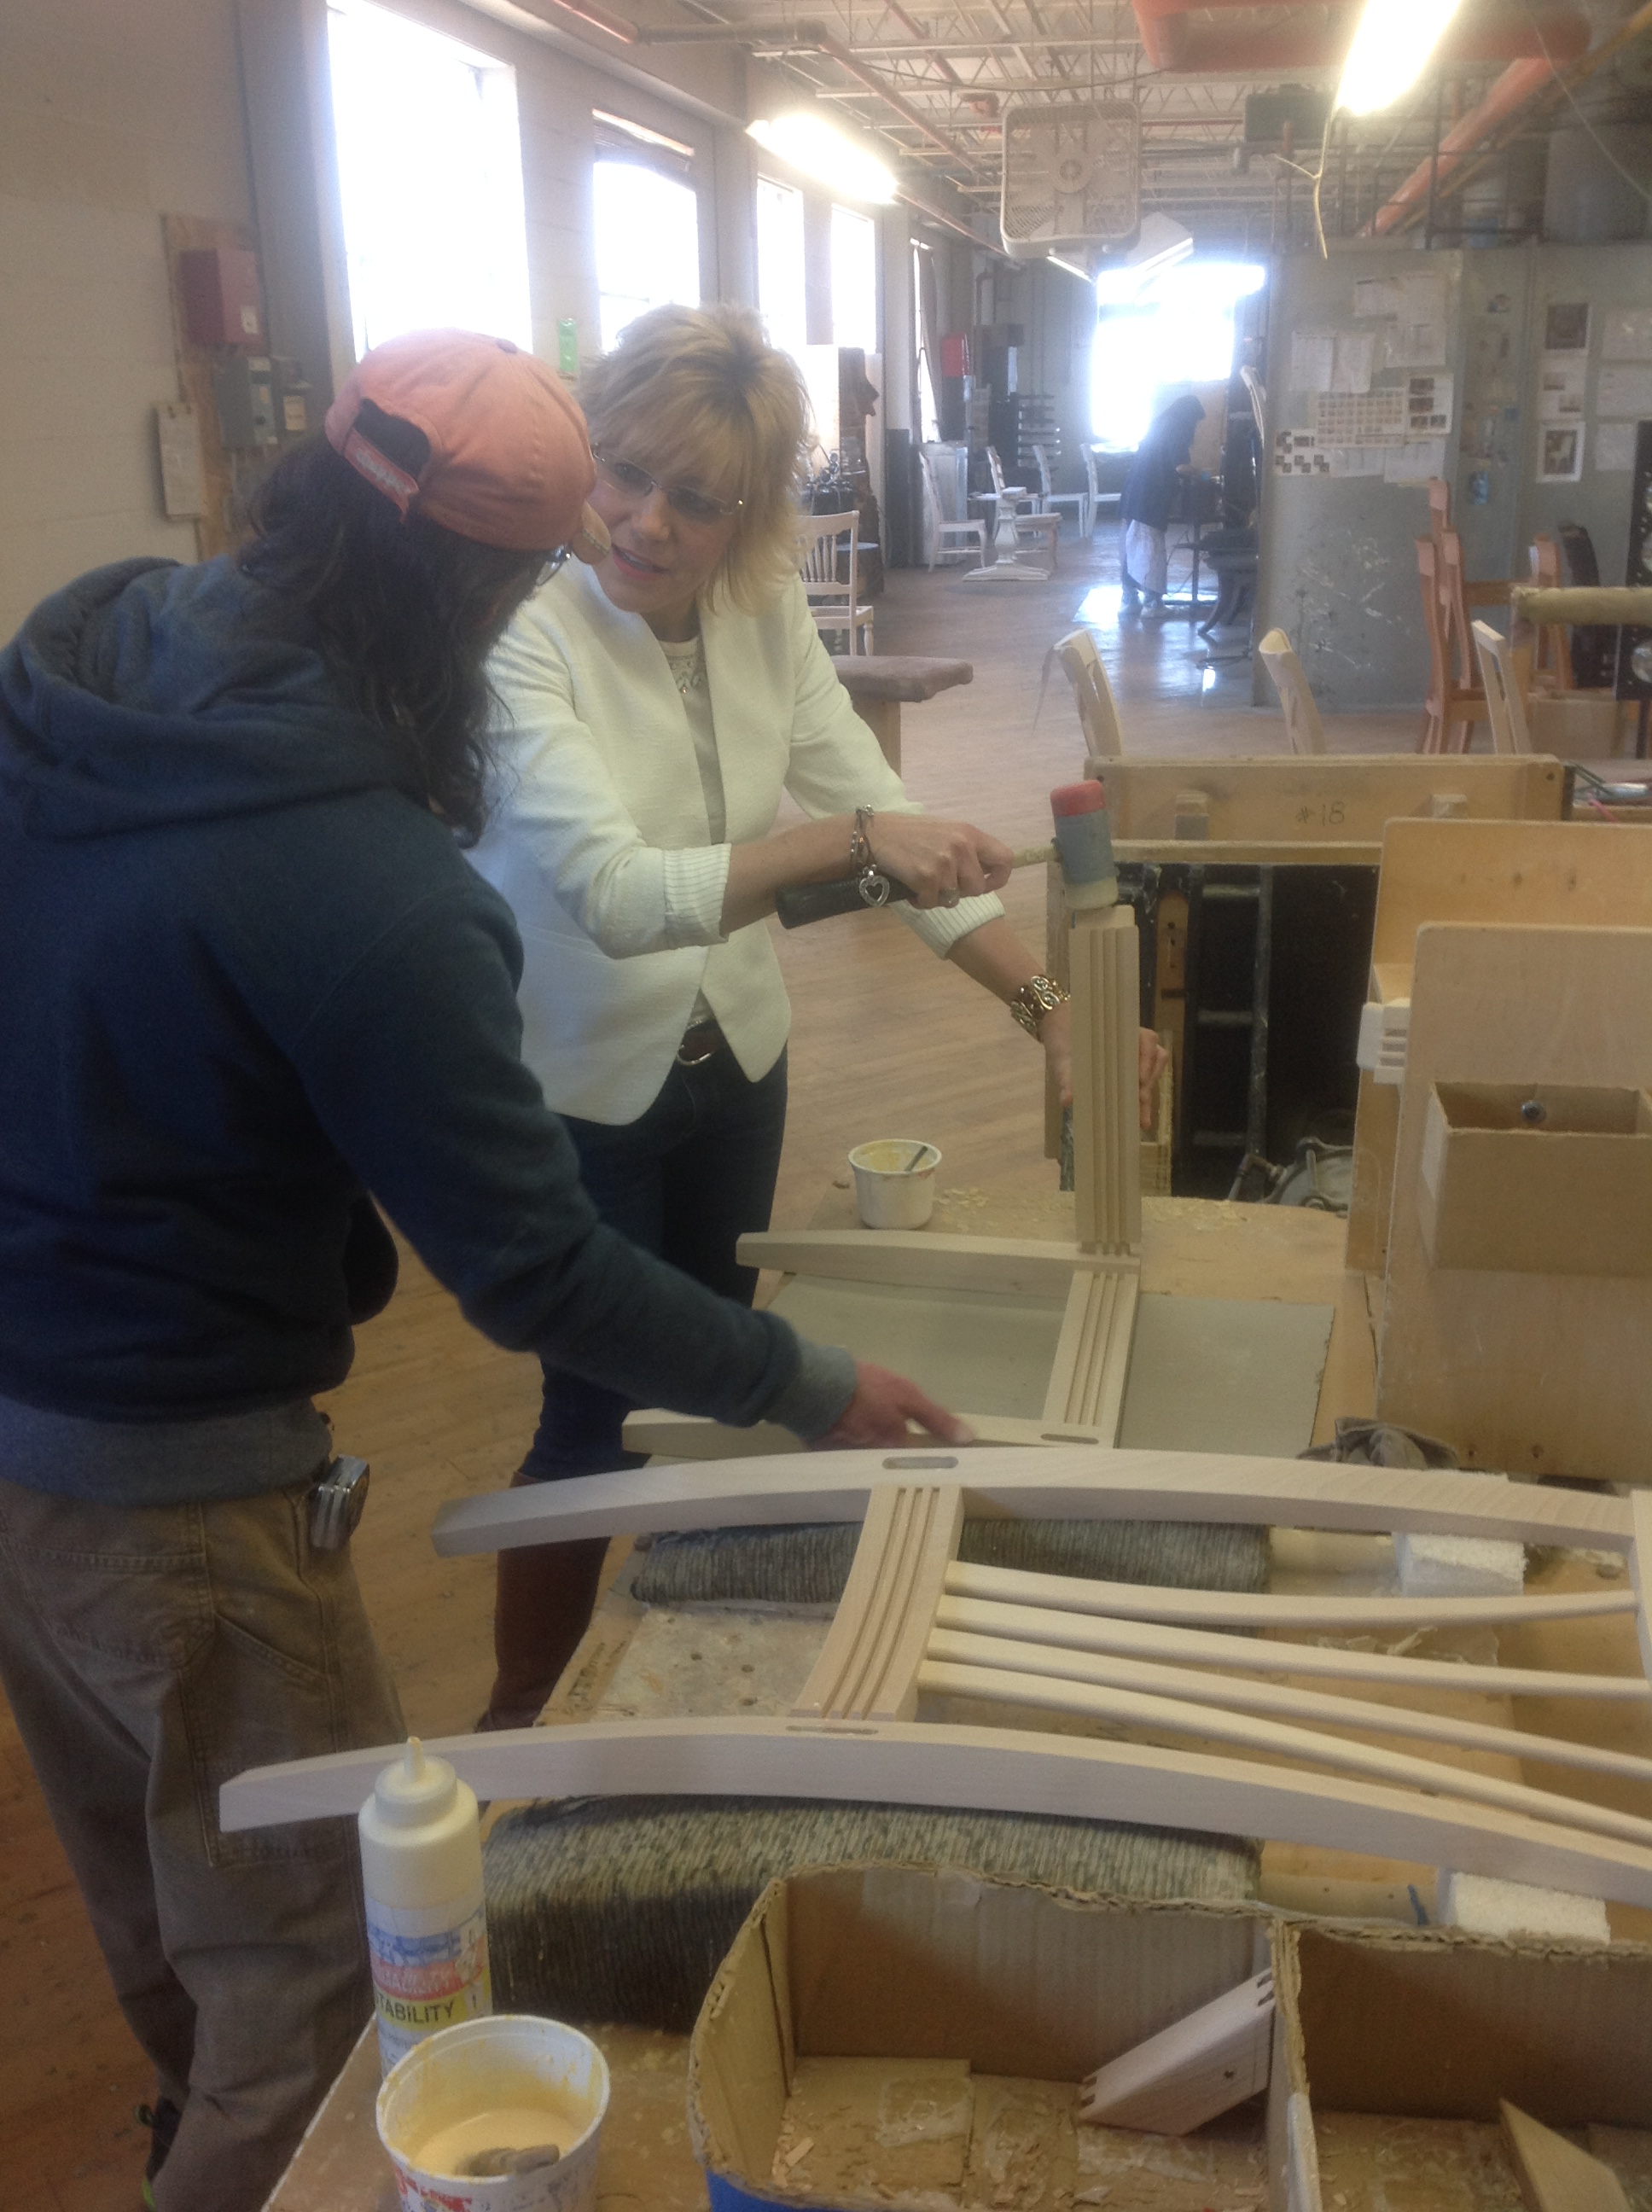 Our own Tammy K. is given instruction on chair assembly during a recent factory tour. Come meet Tammy in our showroom. She has a knack for design you'll appreciate!